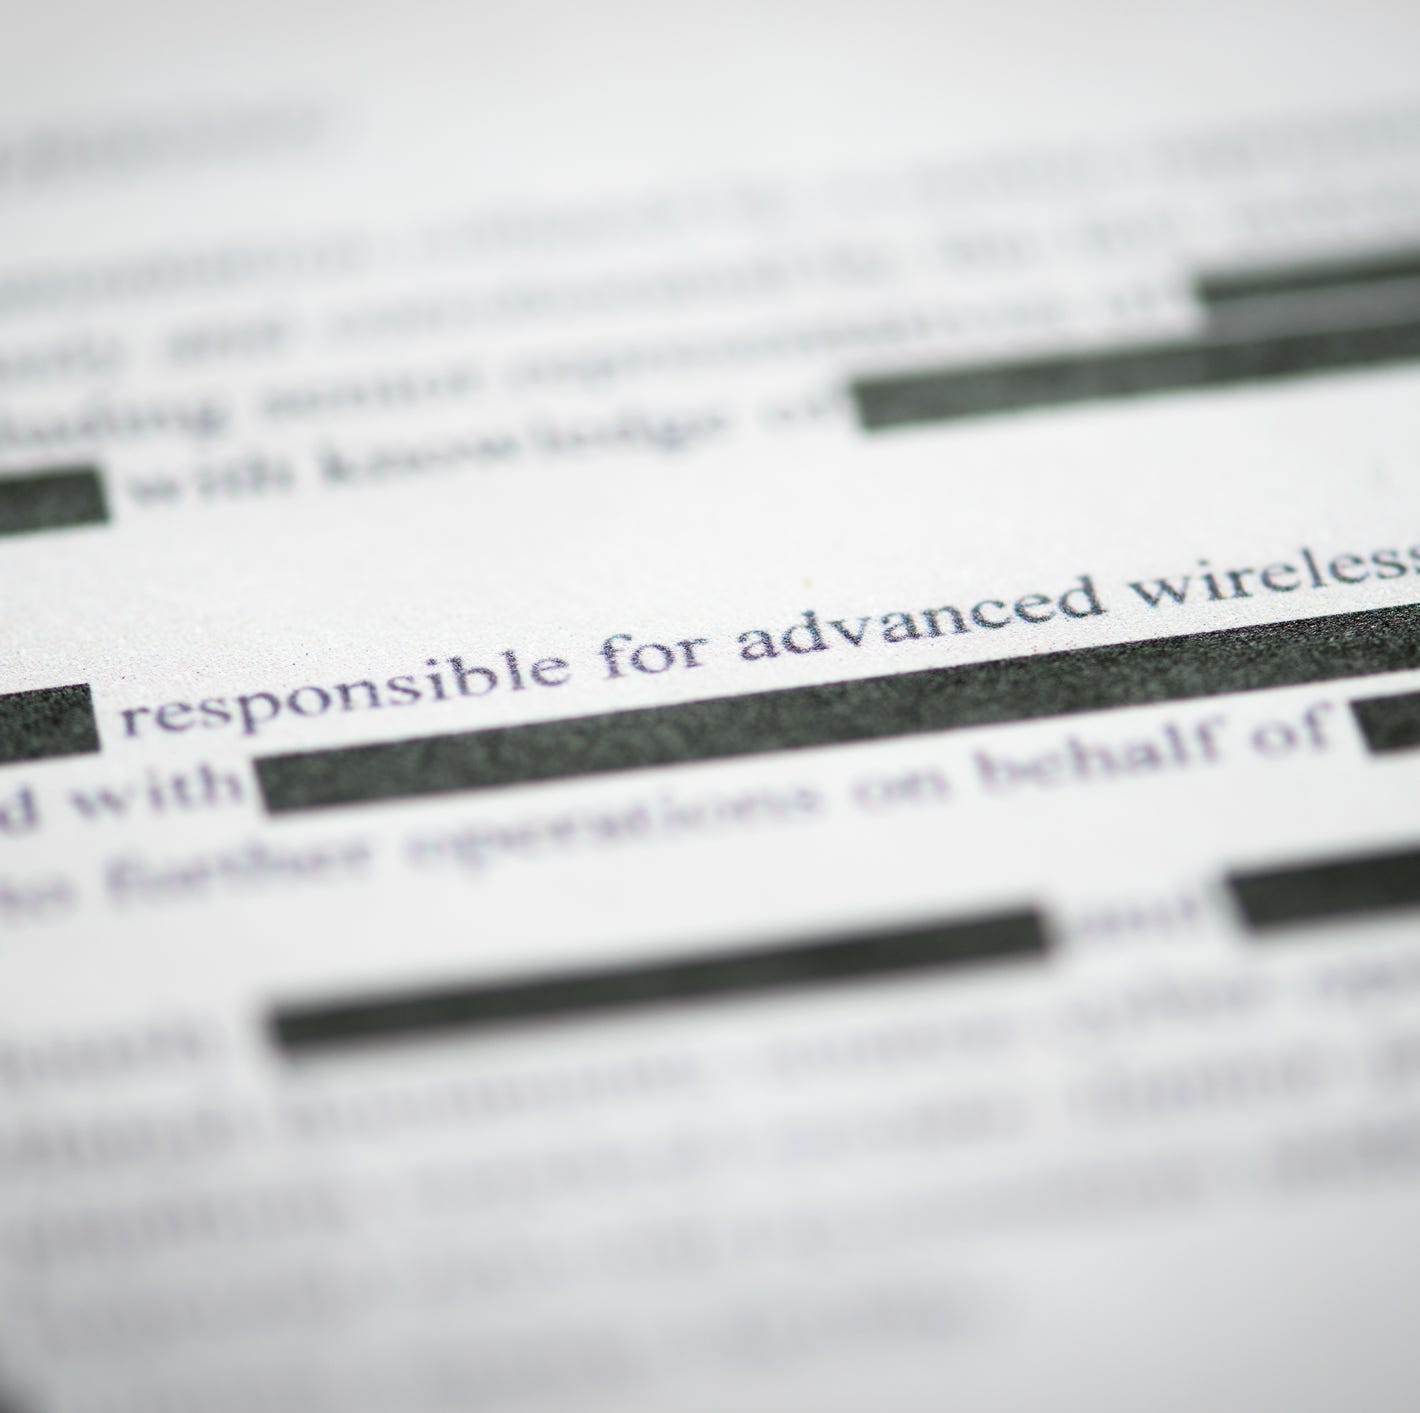 A redacted document with censored words blacked-out.